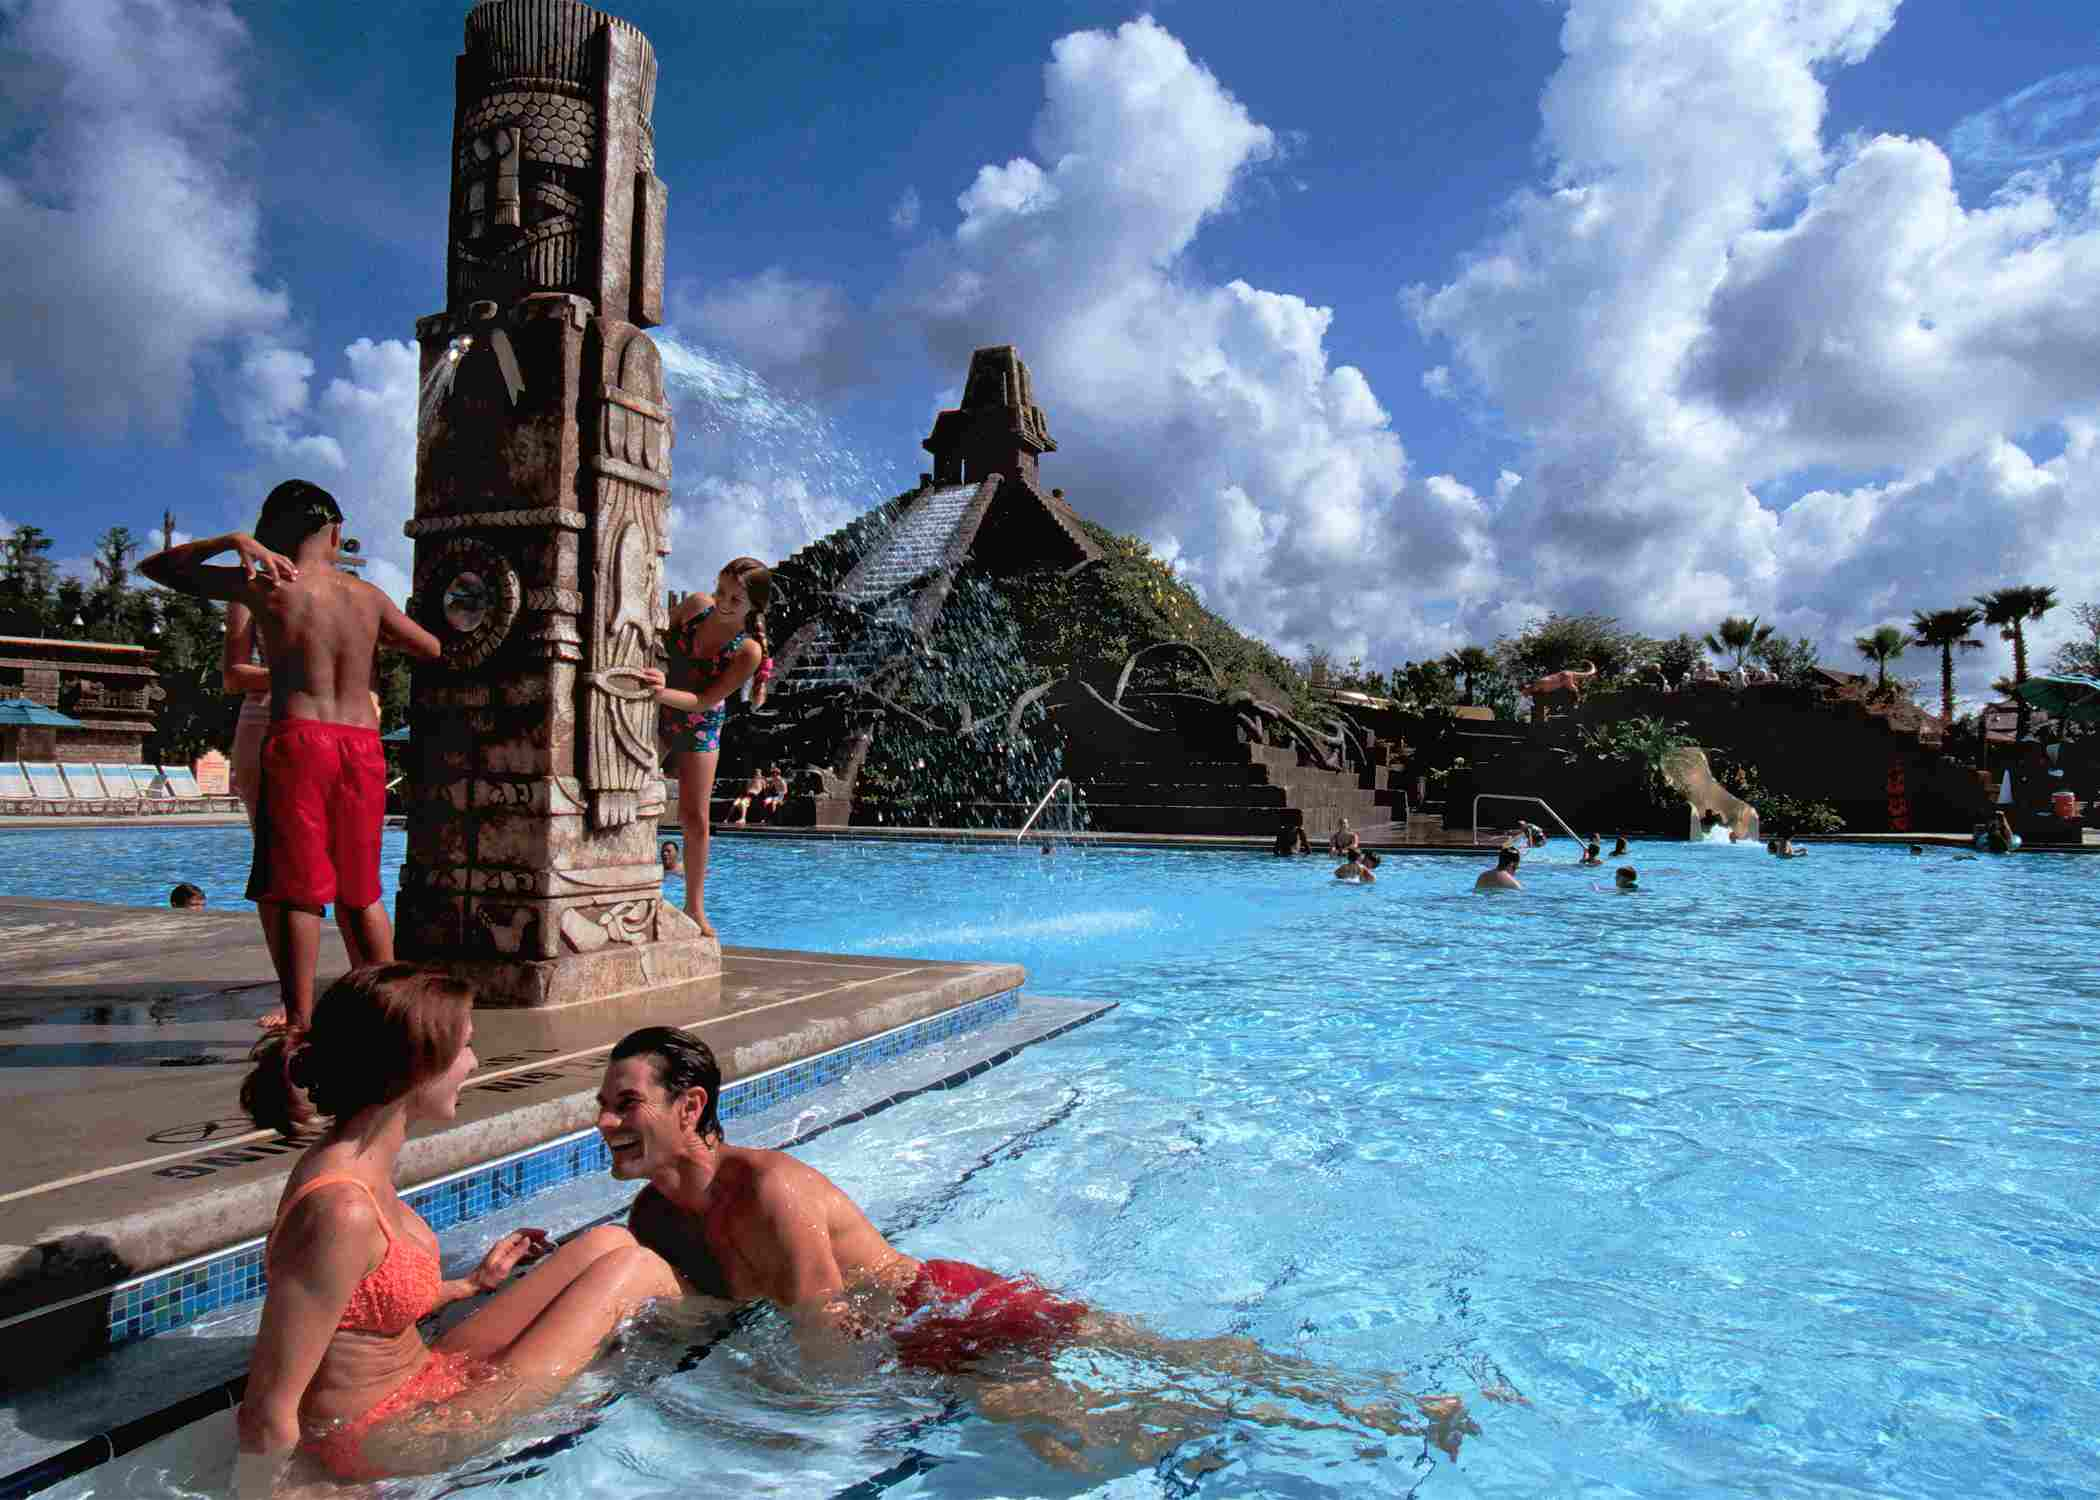 A five-story Mayan pyramid serves as the splashy centerpiece for the family-fun pool at Disney's Coronado Springs Resort